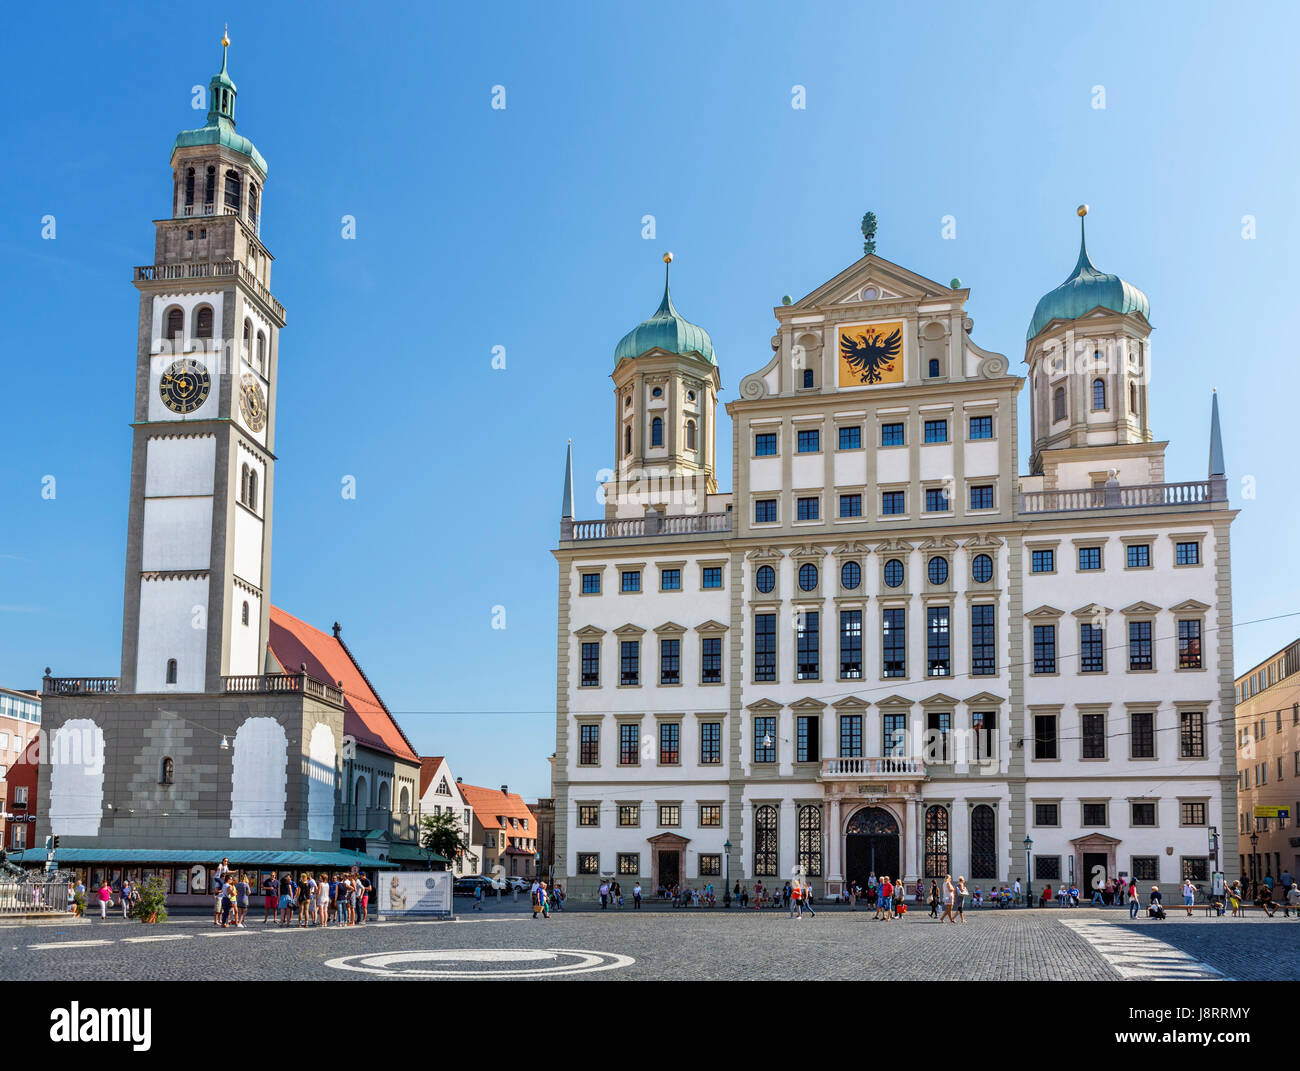 the town hall rathaus and perlach tower perlachturm stock photo 143123707 alamy. Black Bedroom Furniture Sets. Home Design Ideas